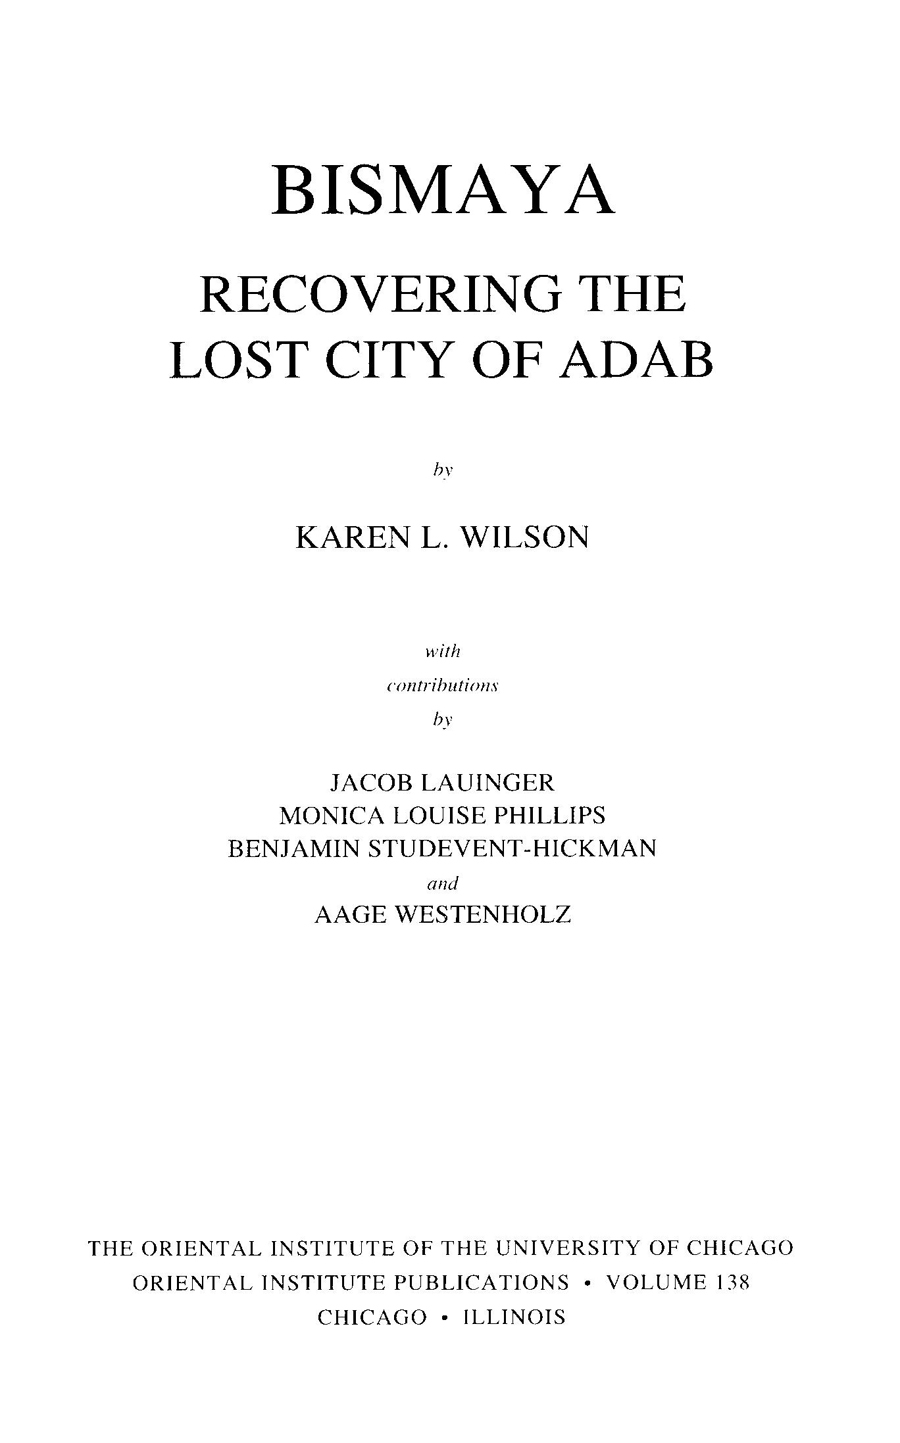 Bismaya: Recovering the Lost City of Adab | The Shelby White